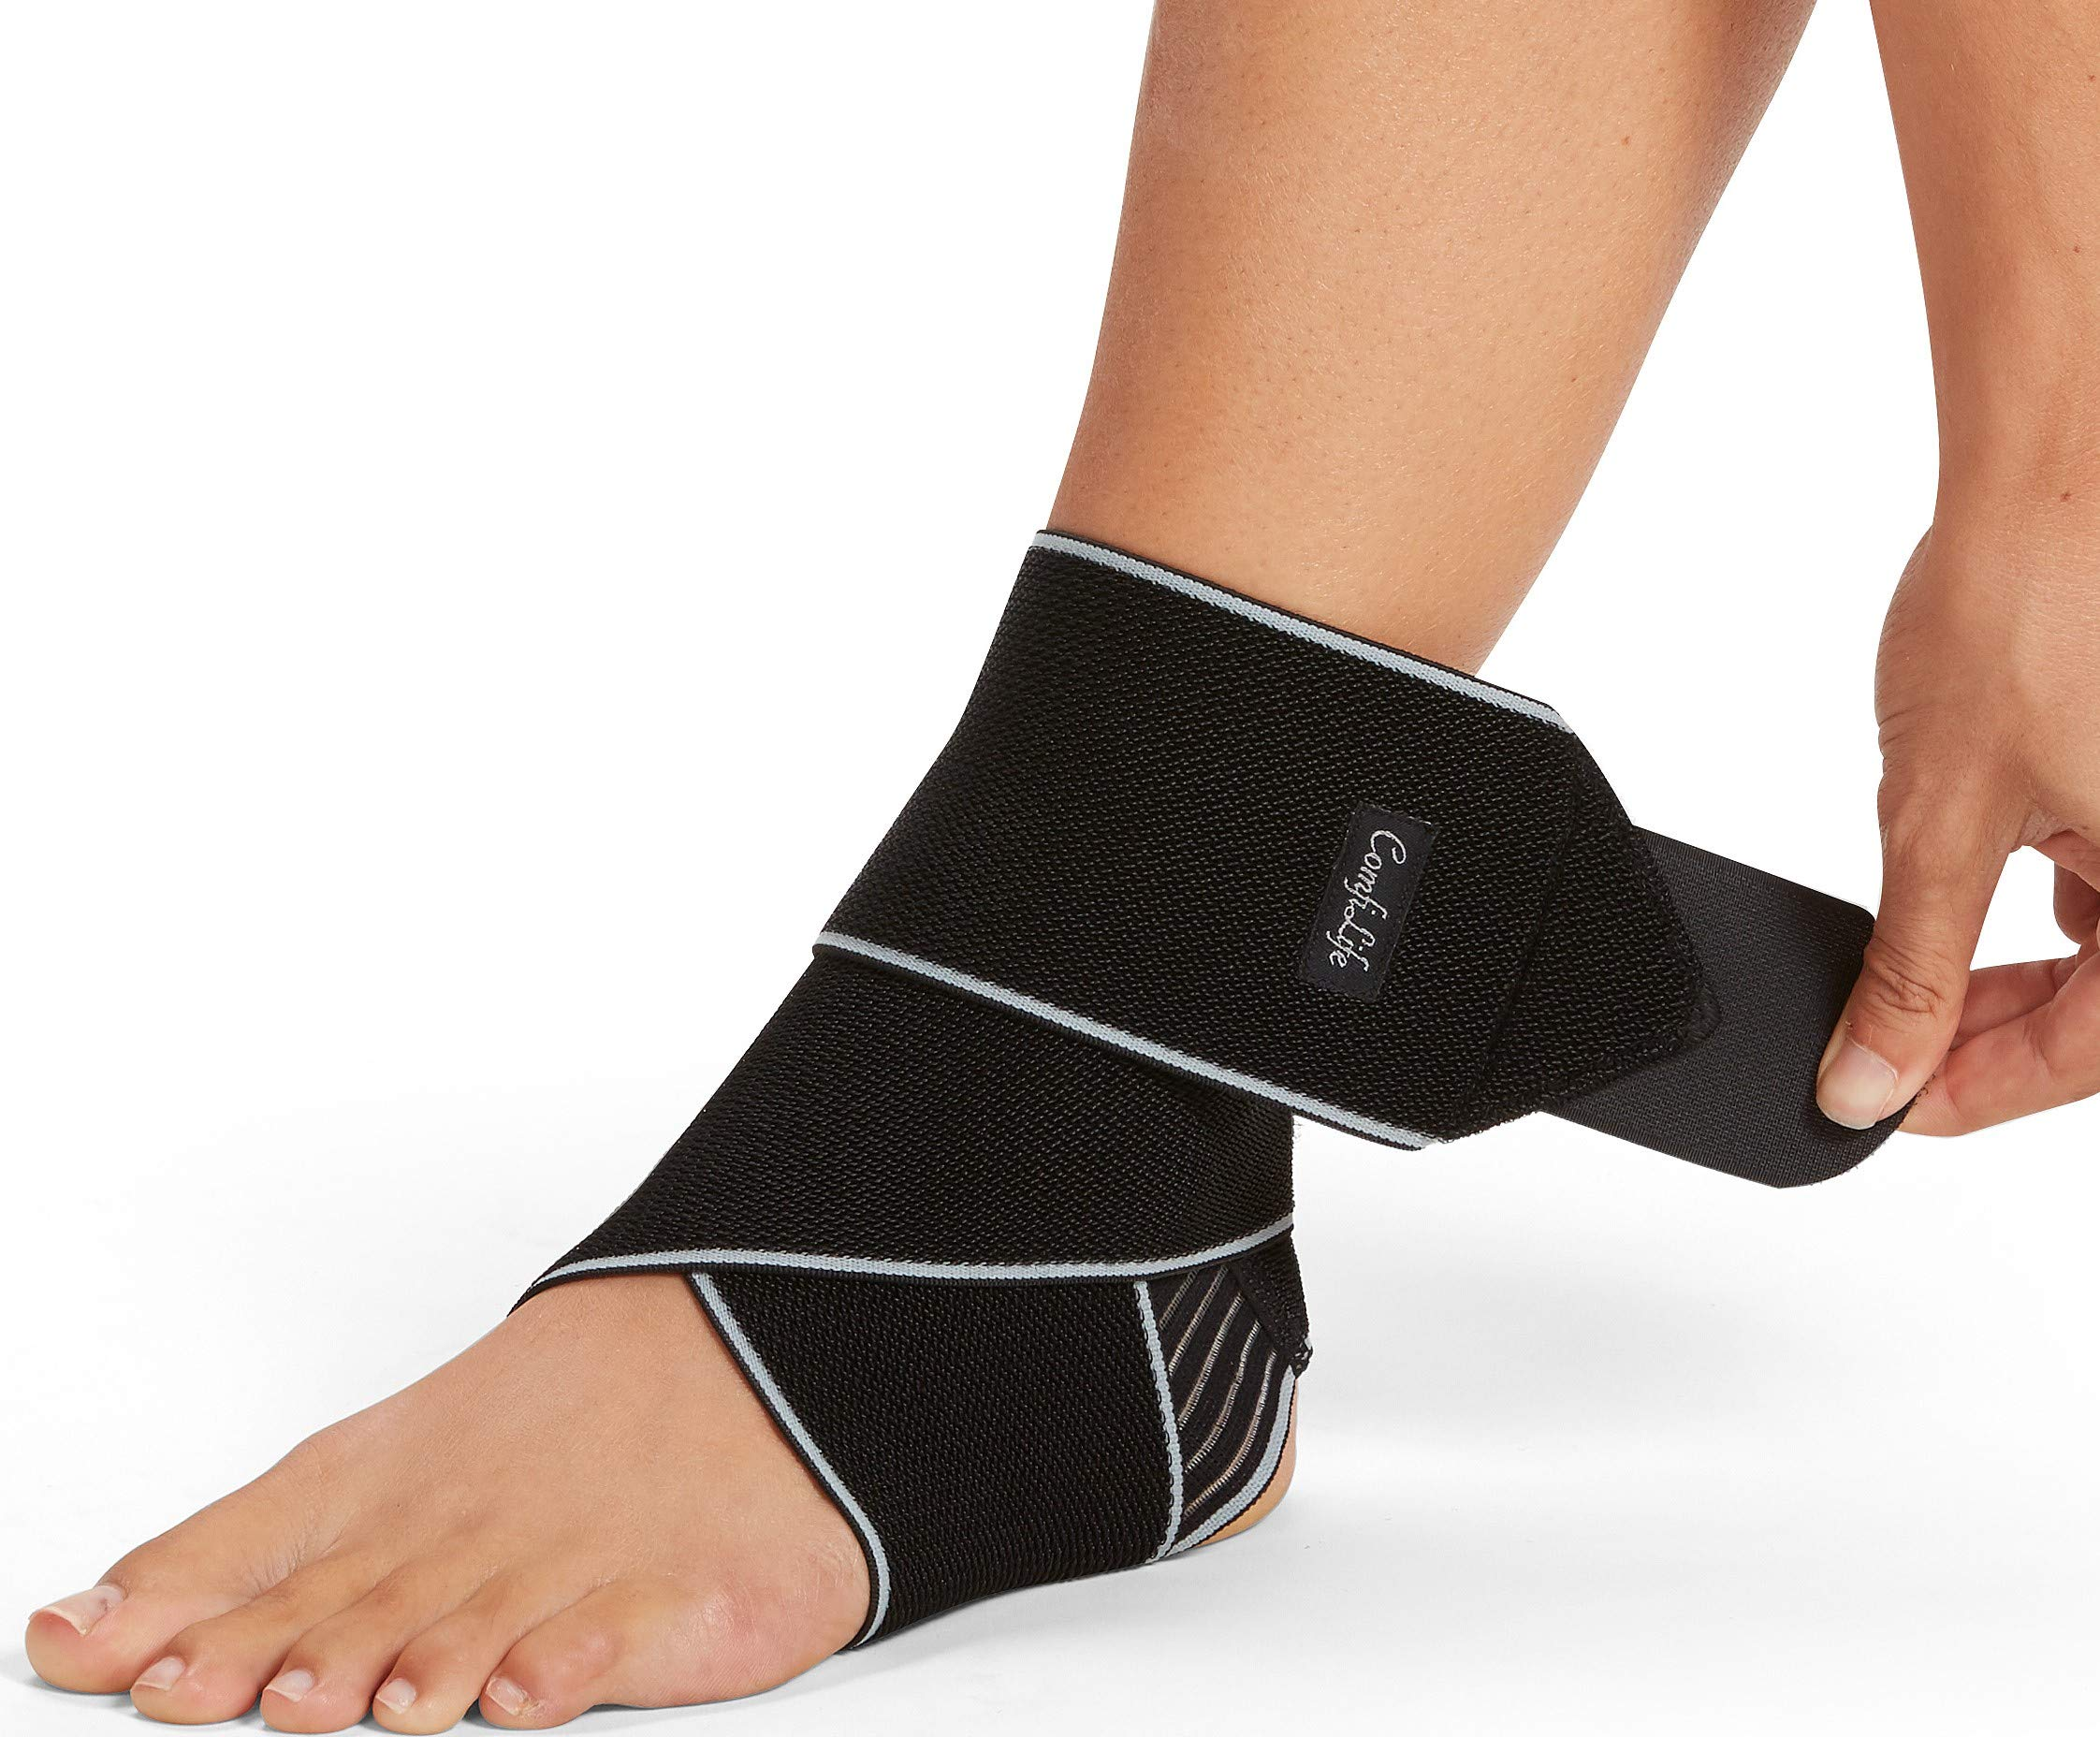 ComfiLife Ankle Brace for Men & Women - Adjustable Compression Ankle Support Wrap - Perfect Ankle Sleeve for Plantar Fasciitis, Achilles Tendon, Minor Sprains, Sports - Breathable, One Size Fits All by ComfiLife